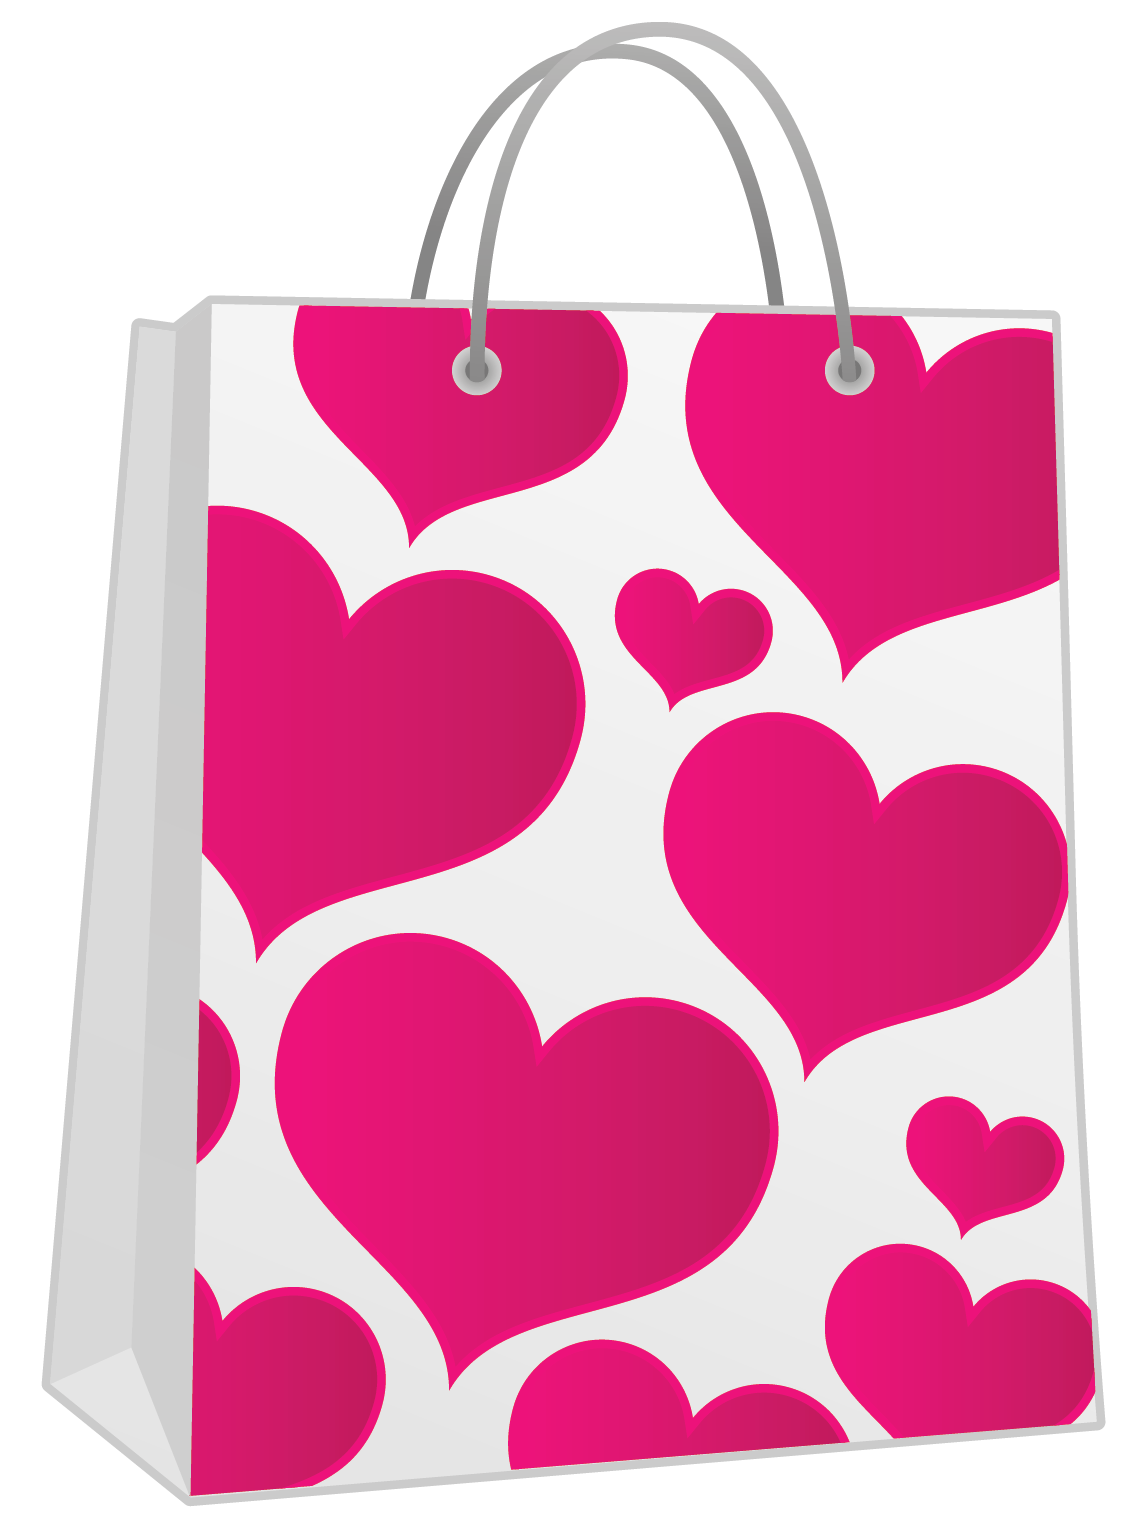 Gift bags png. Valentine pink bag with